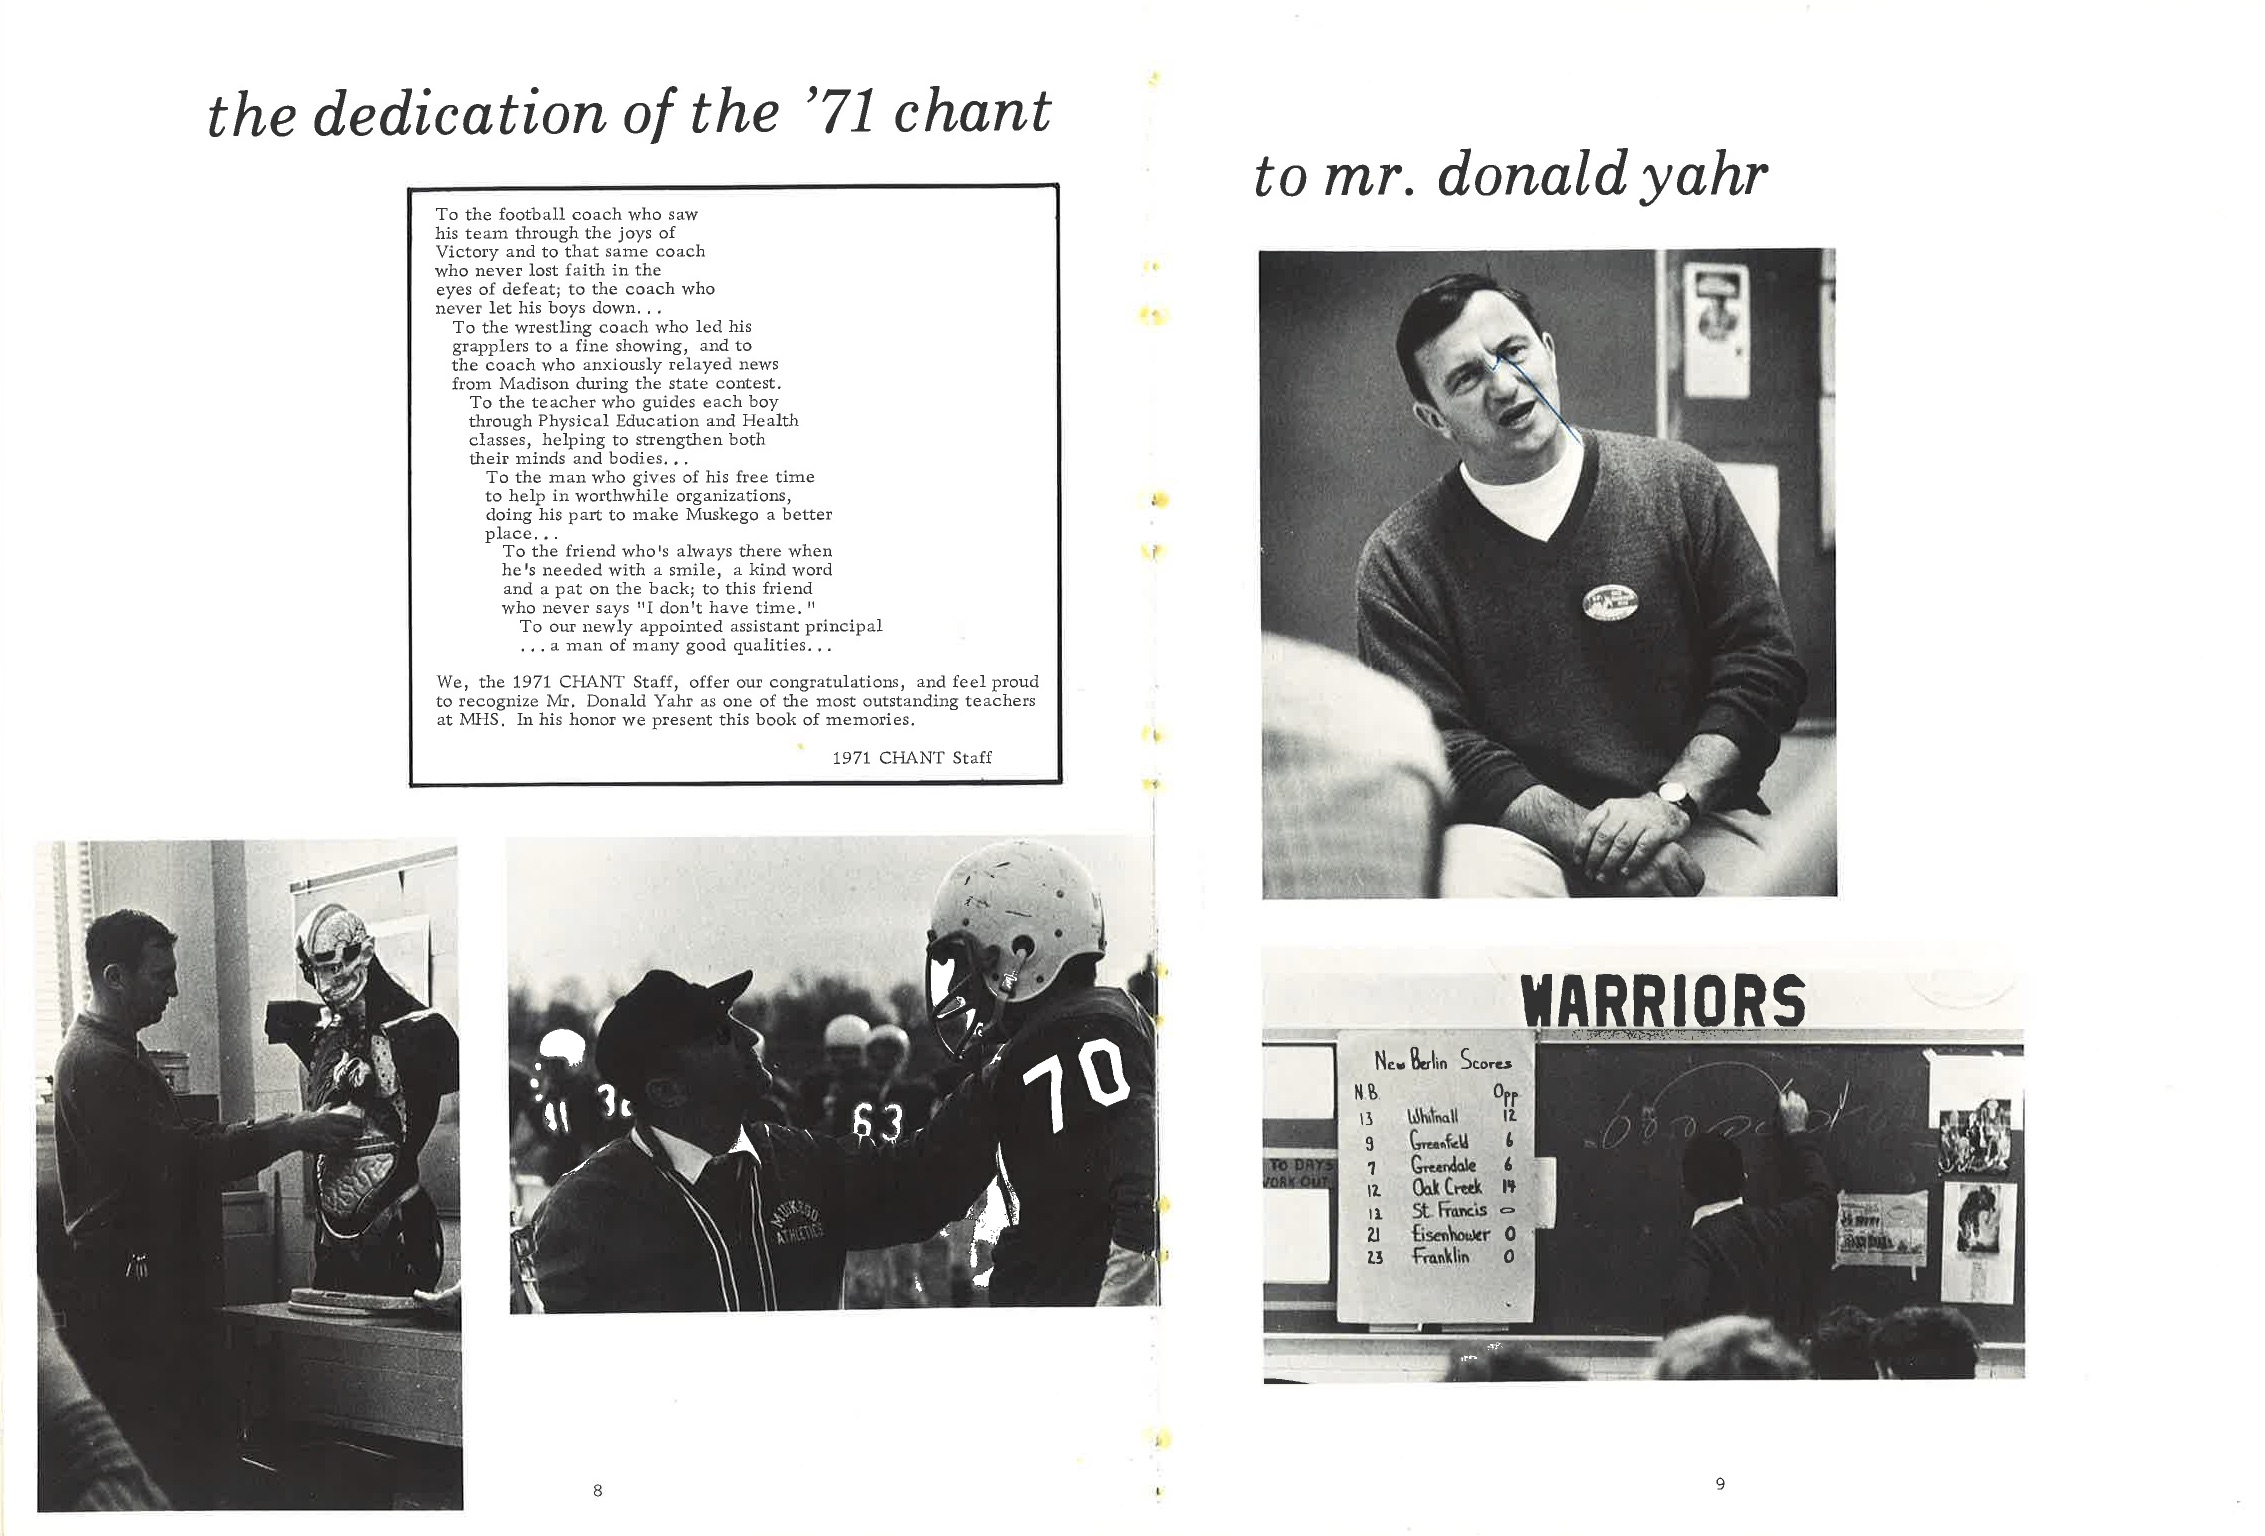 1971_Yearbook_8-9.jpg